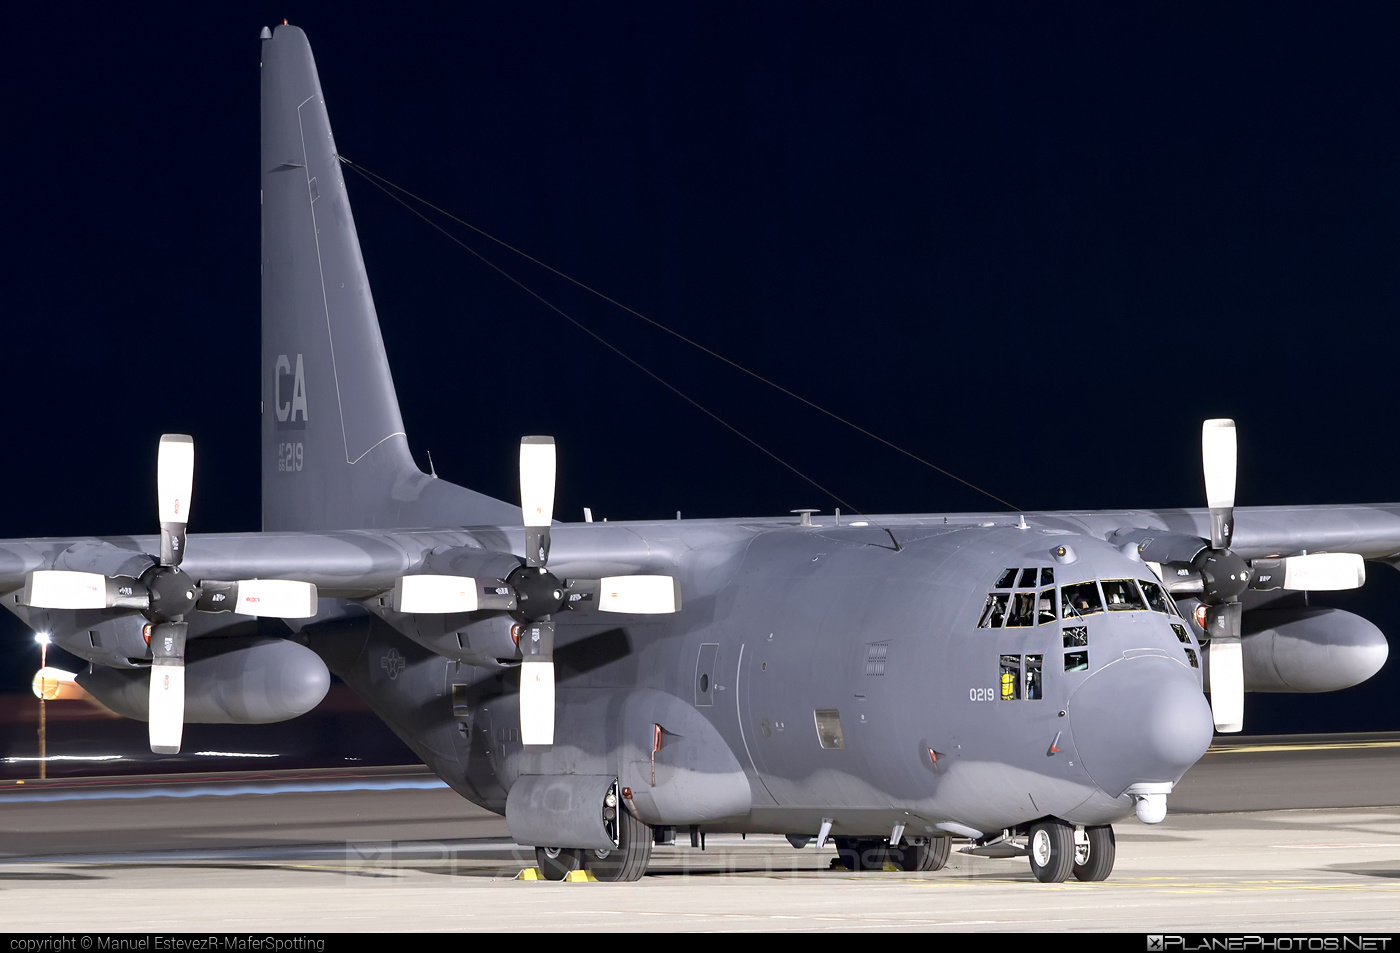 Lockheed MC-130P Combat Shadow - 66-0219 operated by US Air Force (USAF) #lockheed #usaf #usairforce